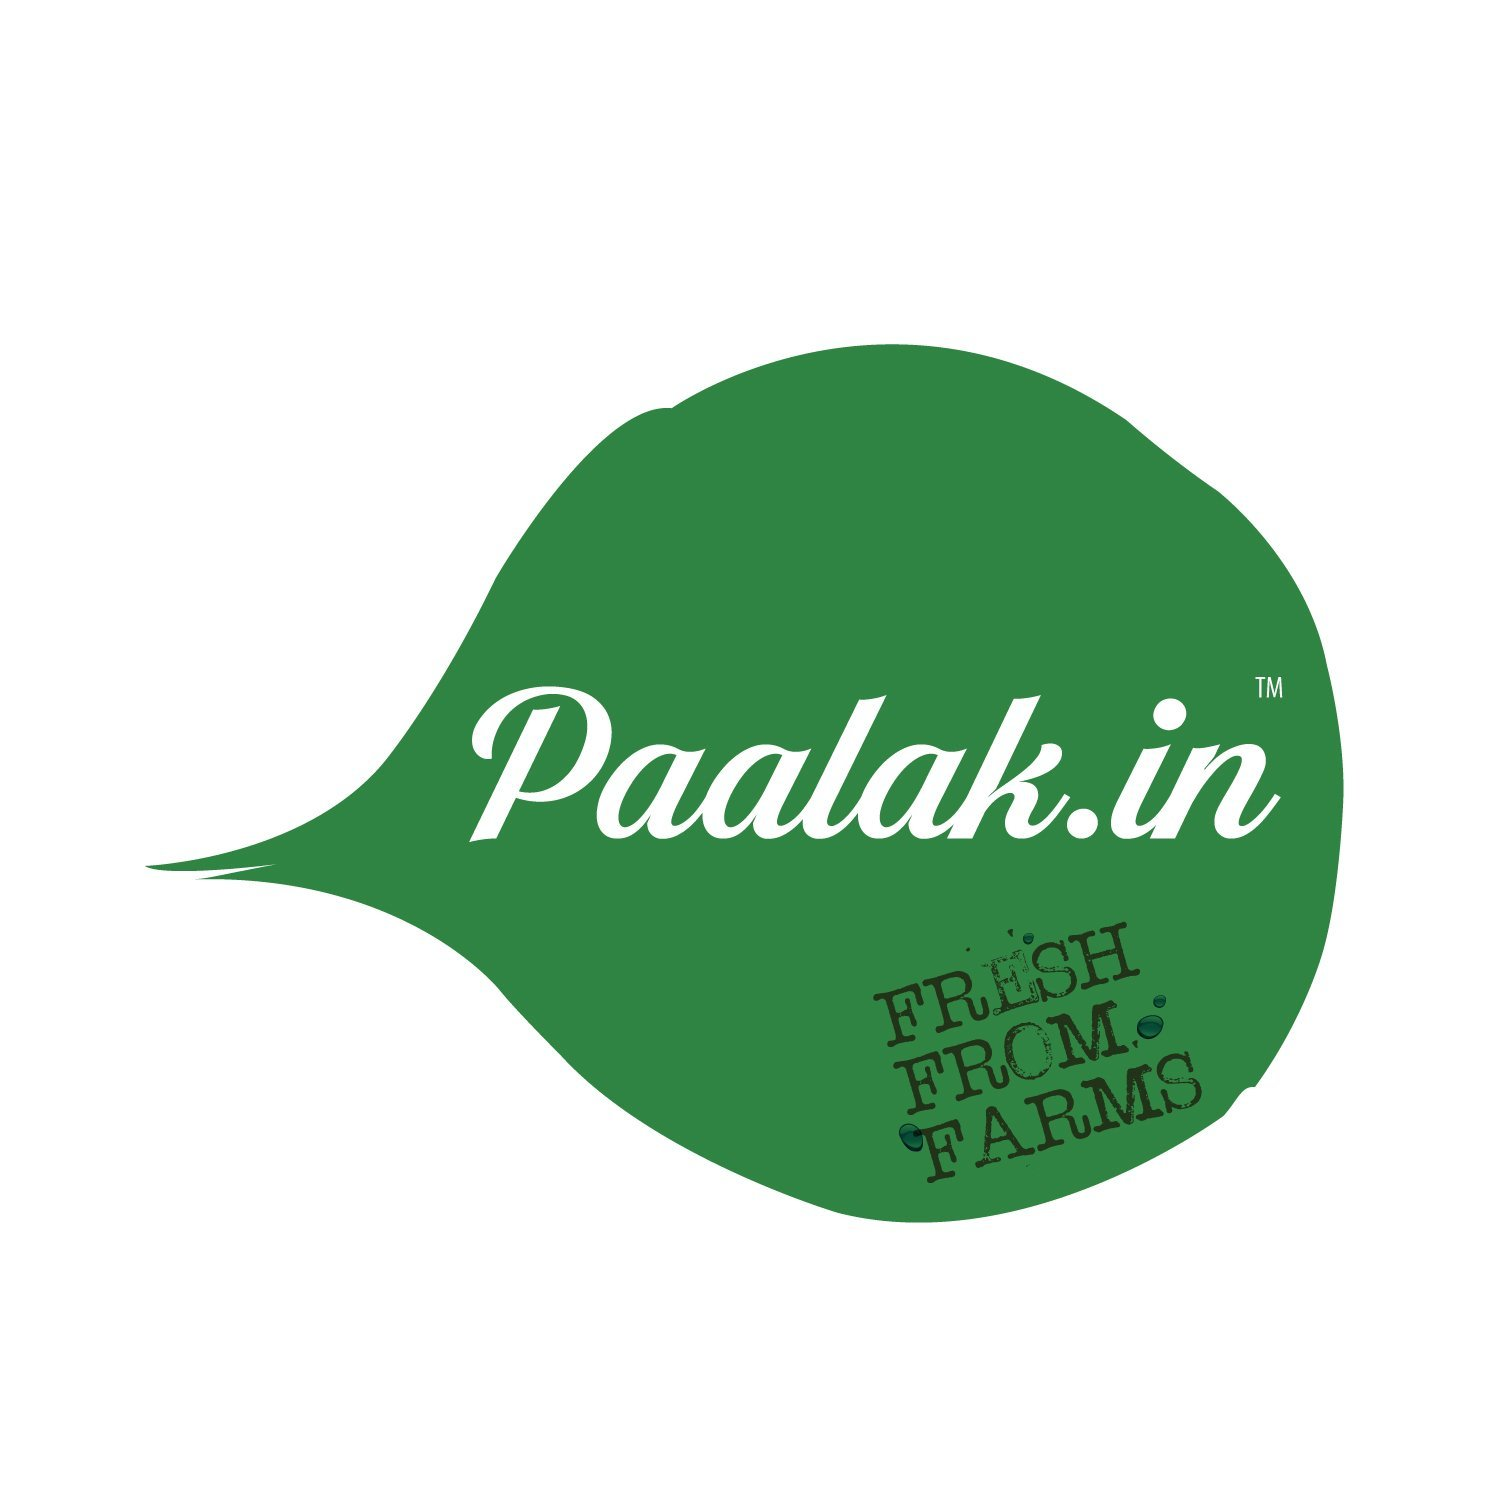 Paalak.in